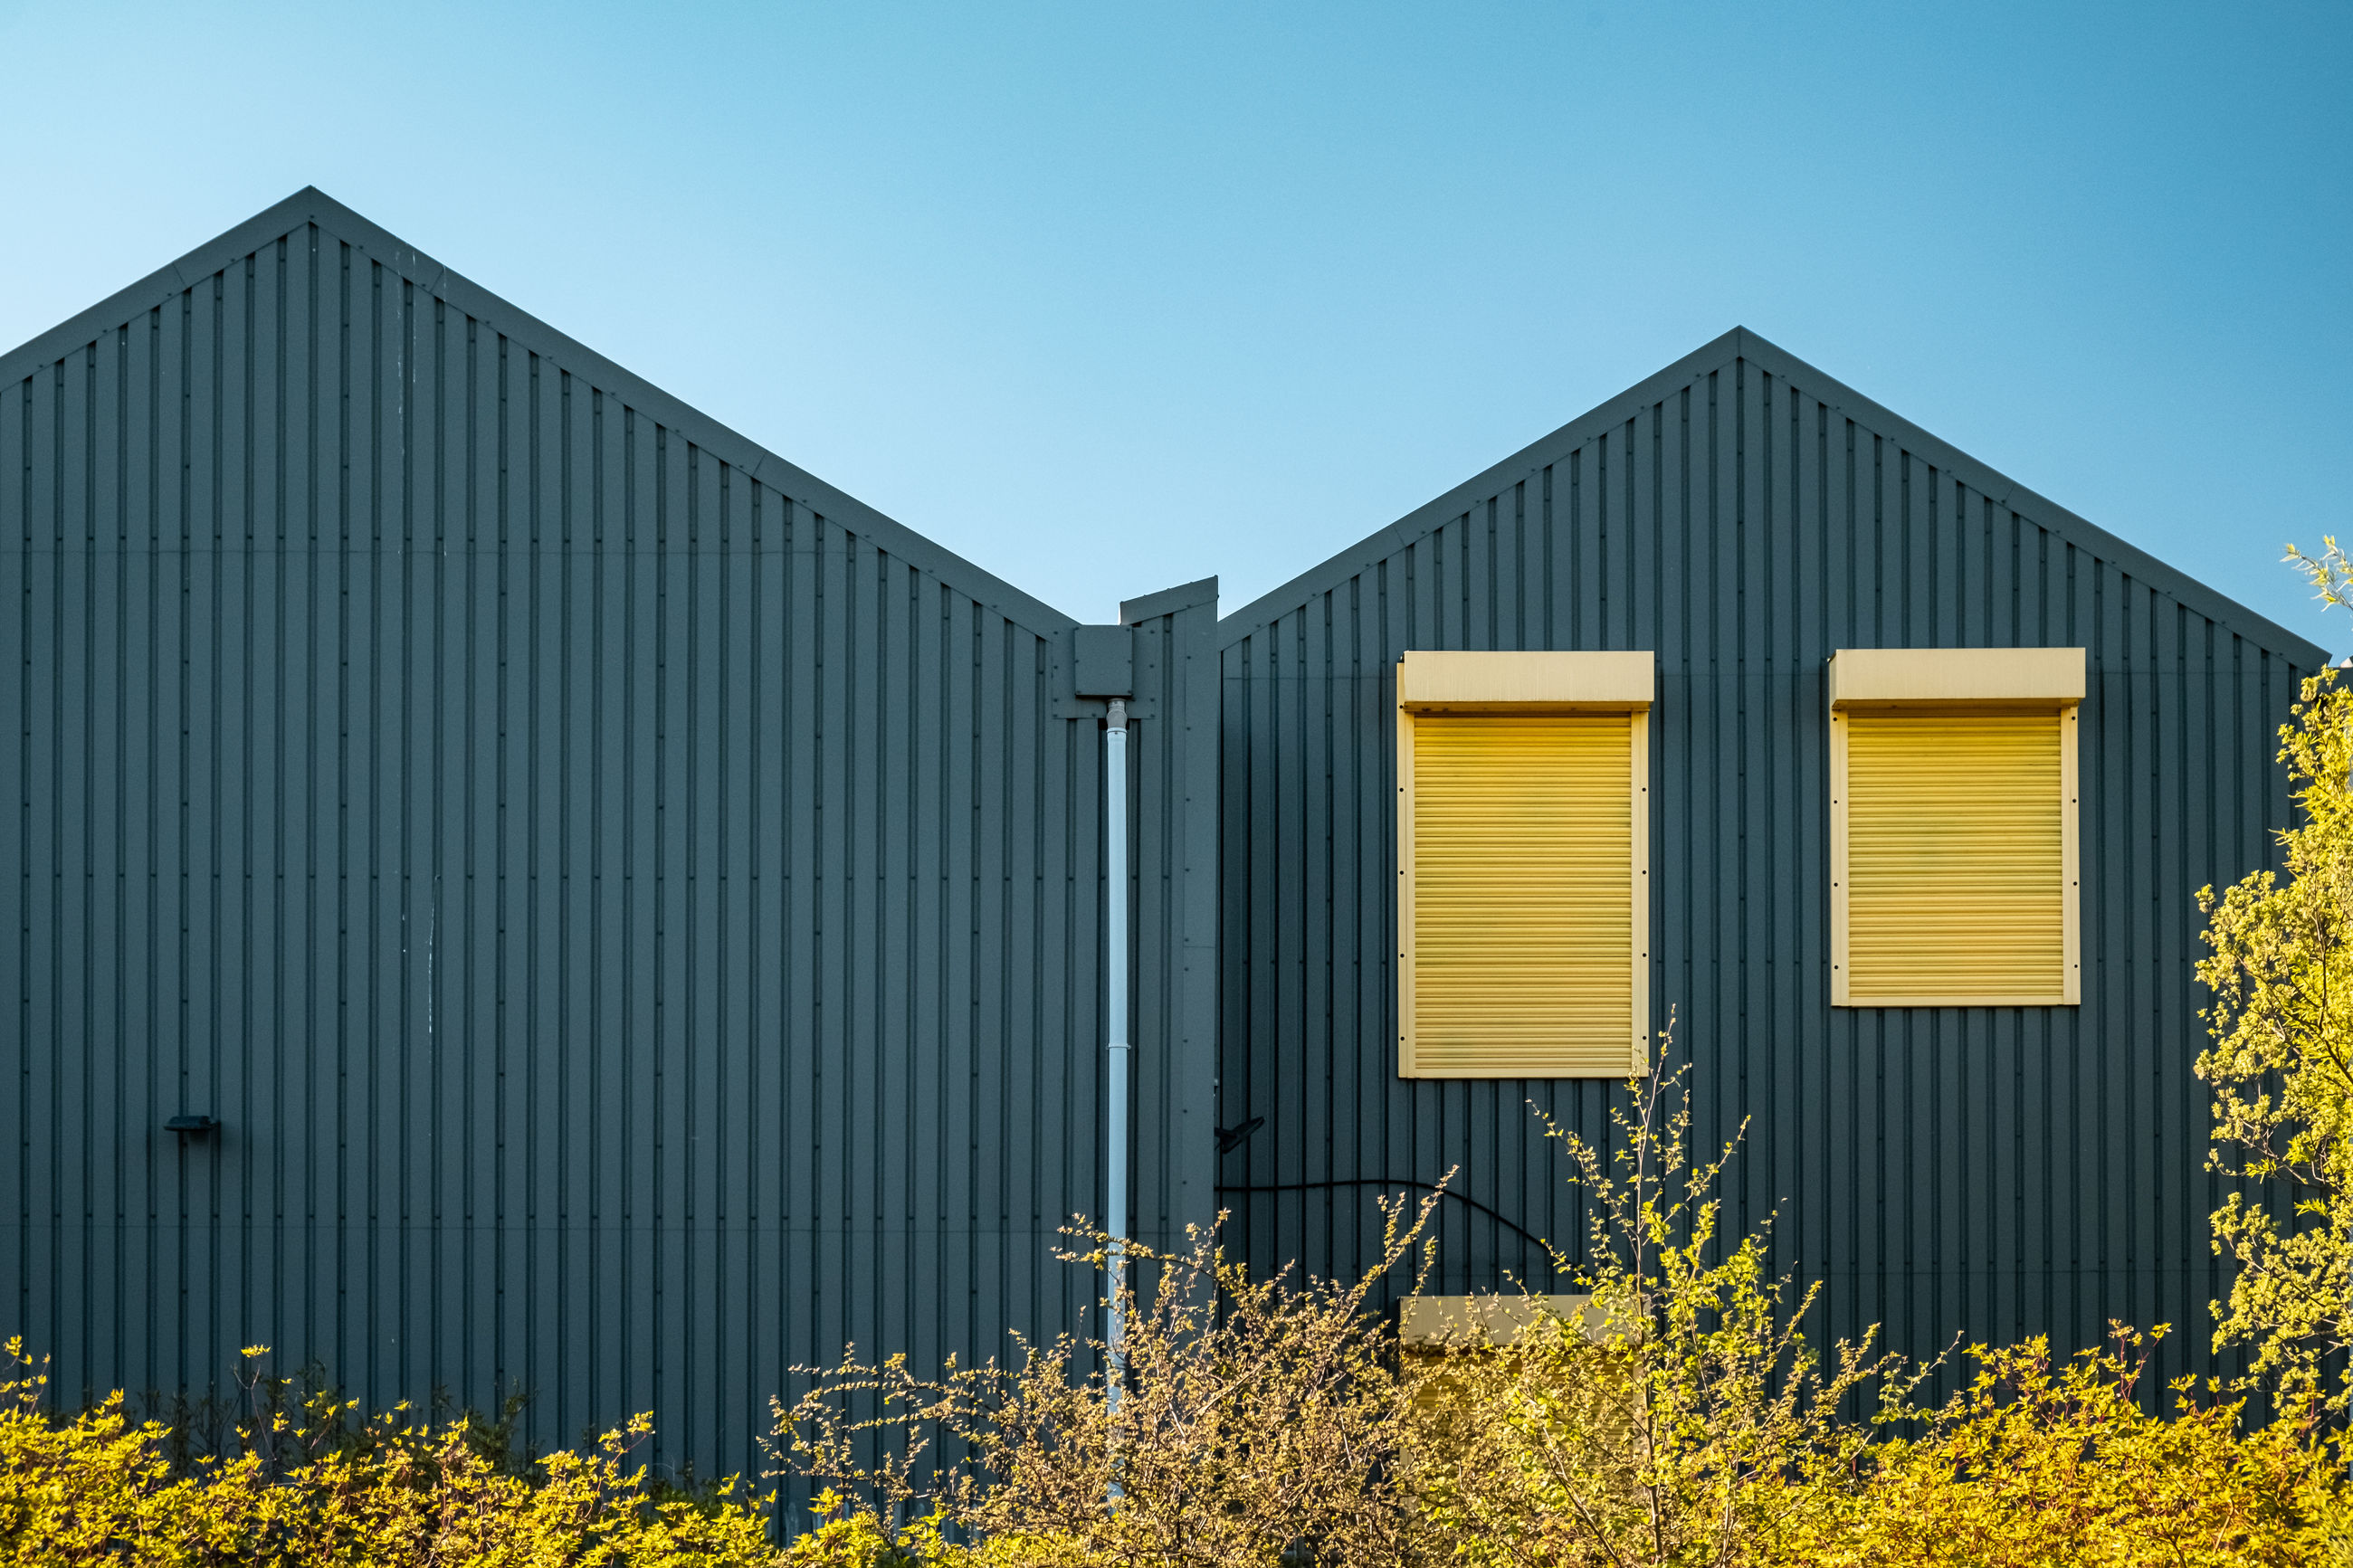 built structure, architecture, building exterior, sky, yellow, clear sky, plant, day, no people, nature, blue, building, outdoors, metal, corrugated iron, land, iron, sunlight, corrugated, hut